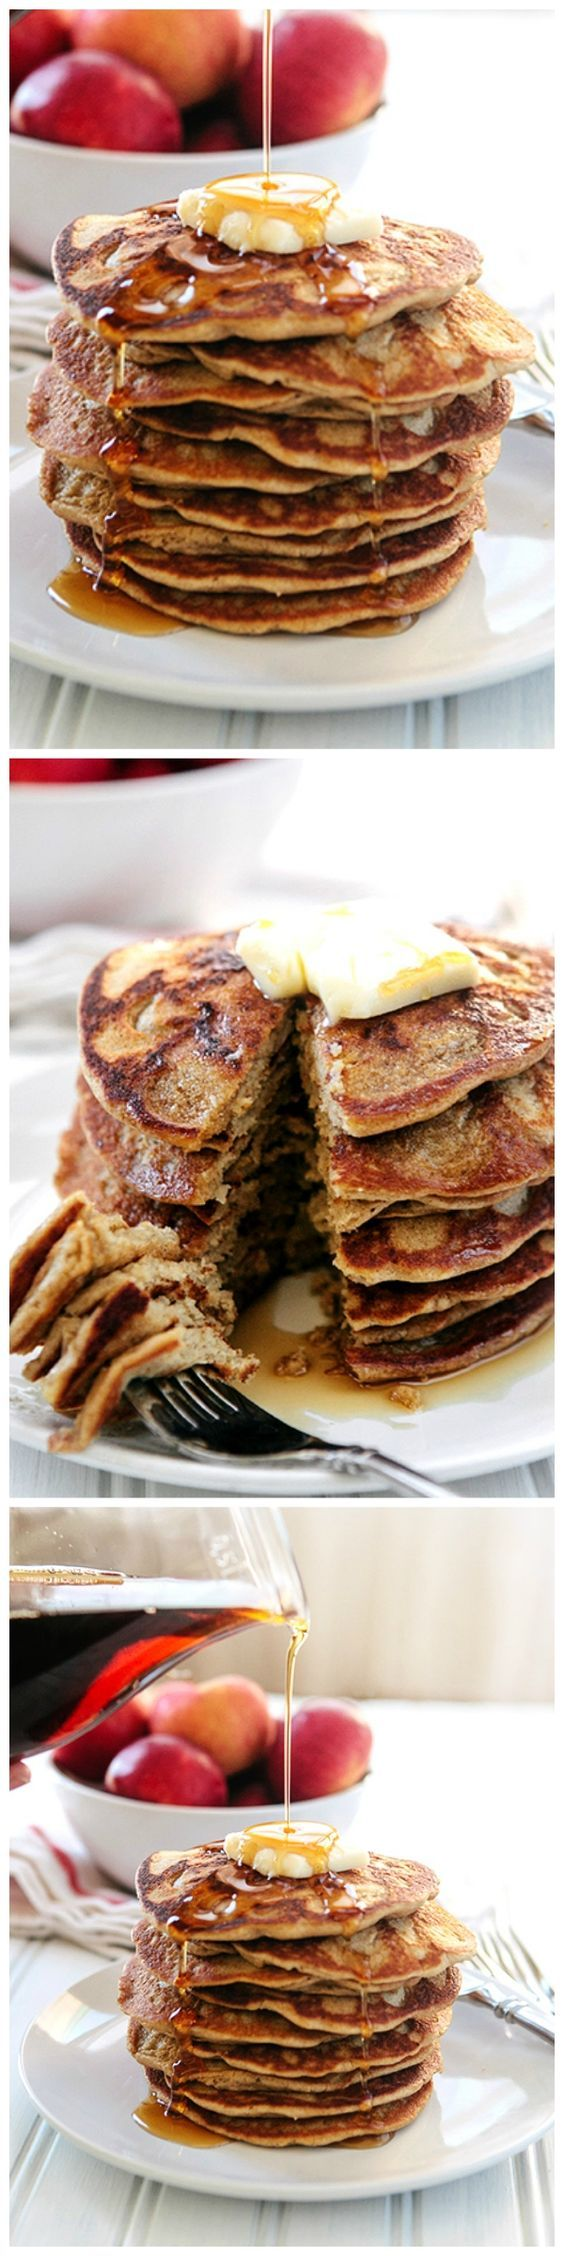 Oatmeal Apple Blender Pancakes (Gluten Free and Dairy Free) - skip the flour and use Steel Cut Oats instead. These delicious simple pancakes whip up in the blender in no time!